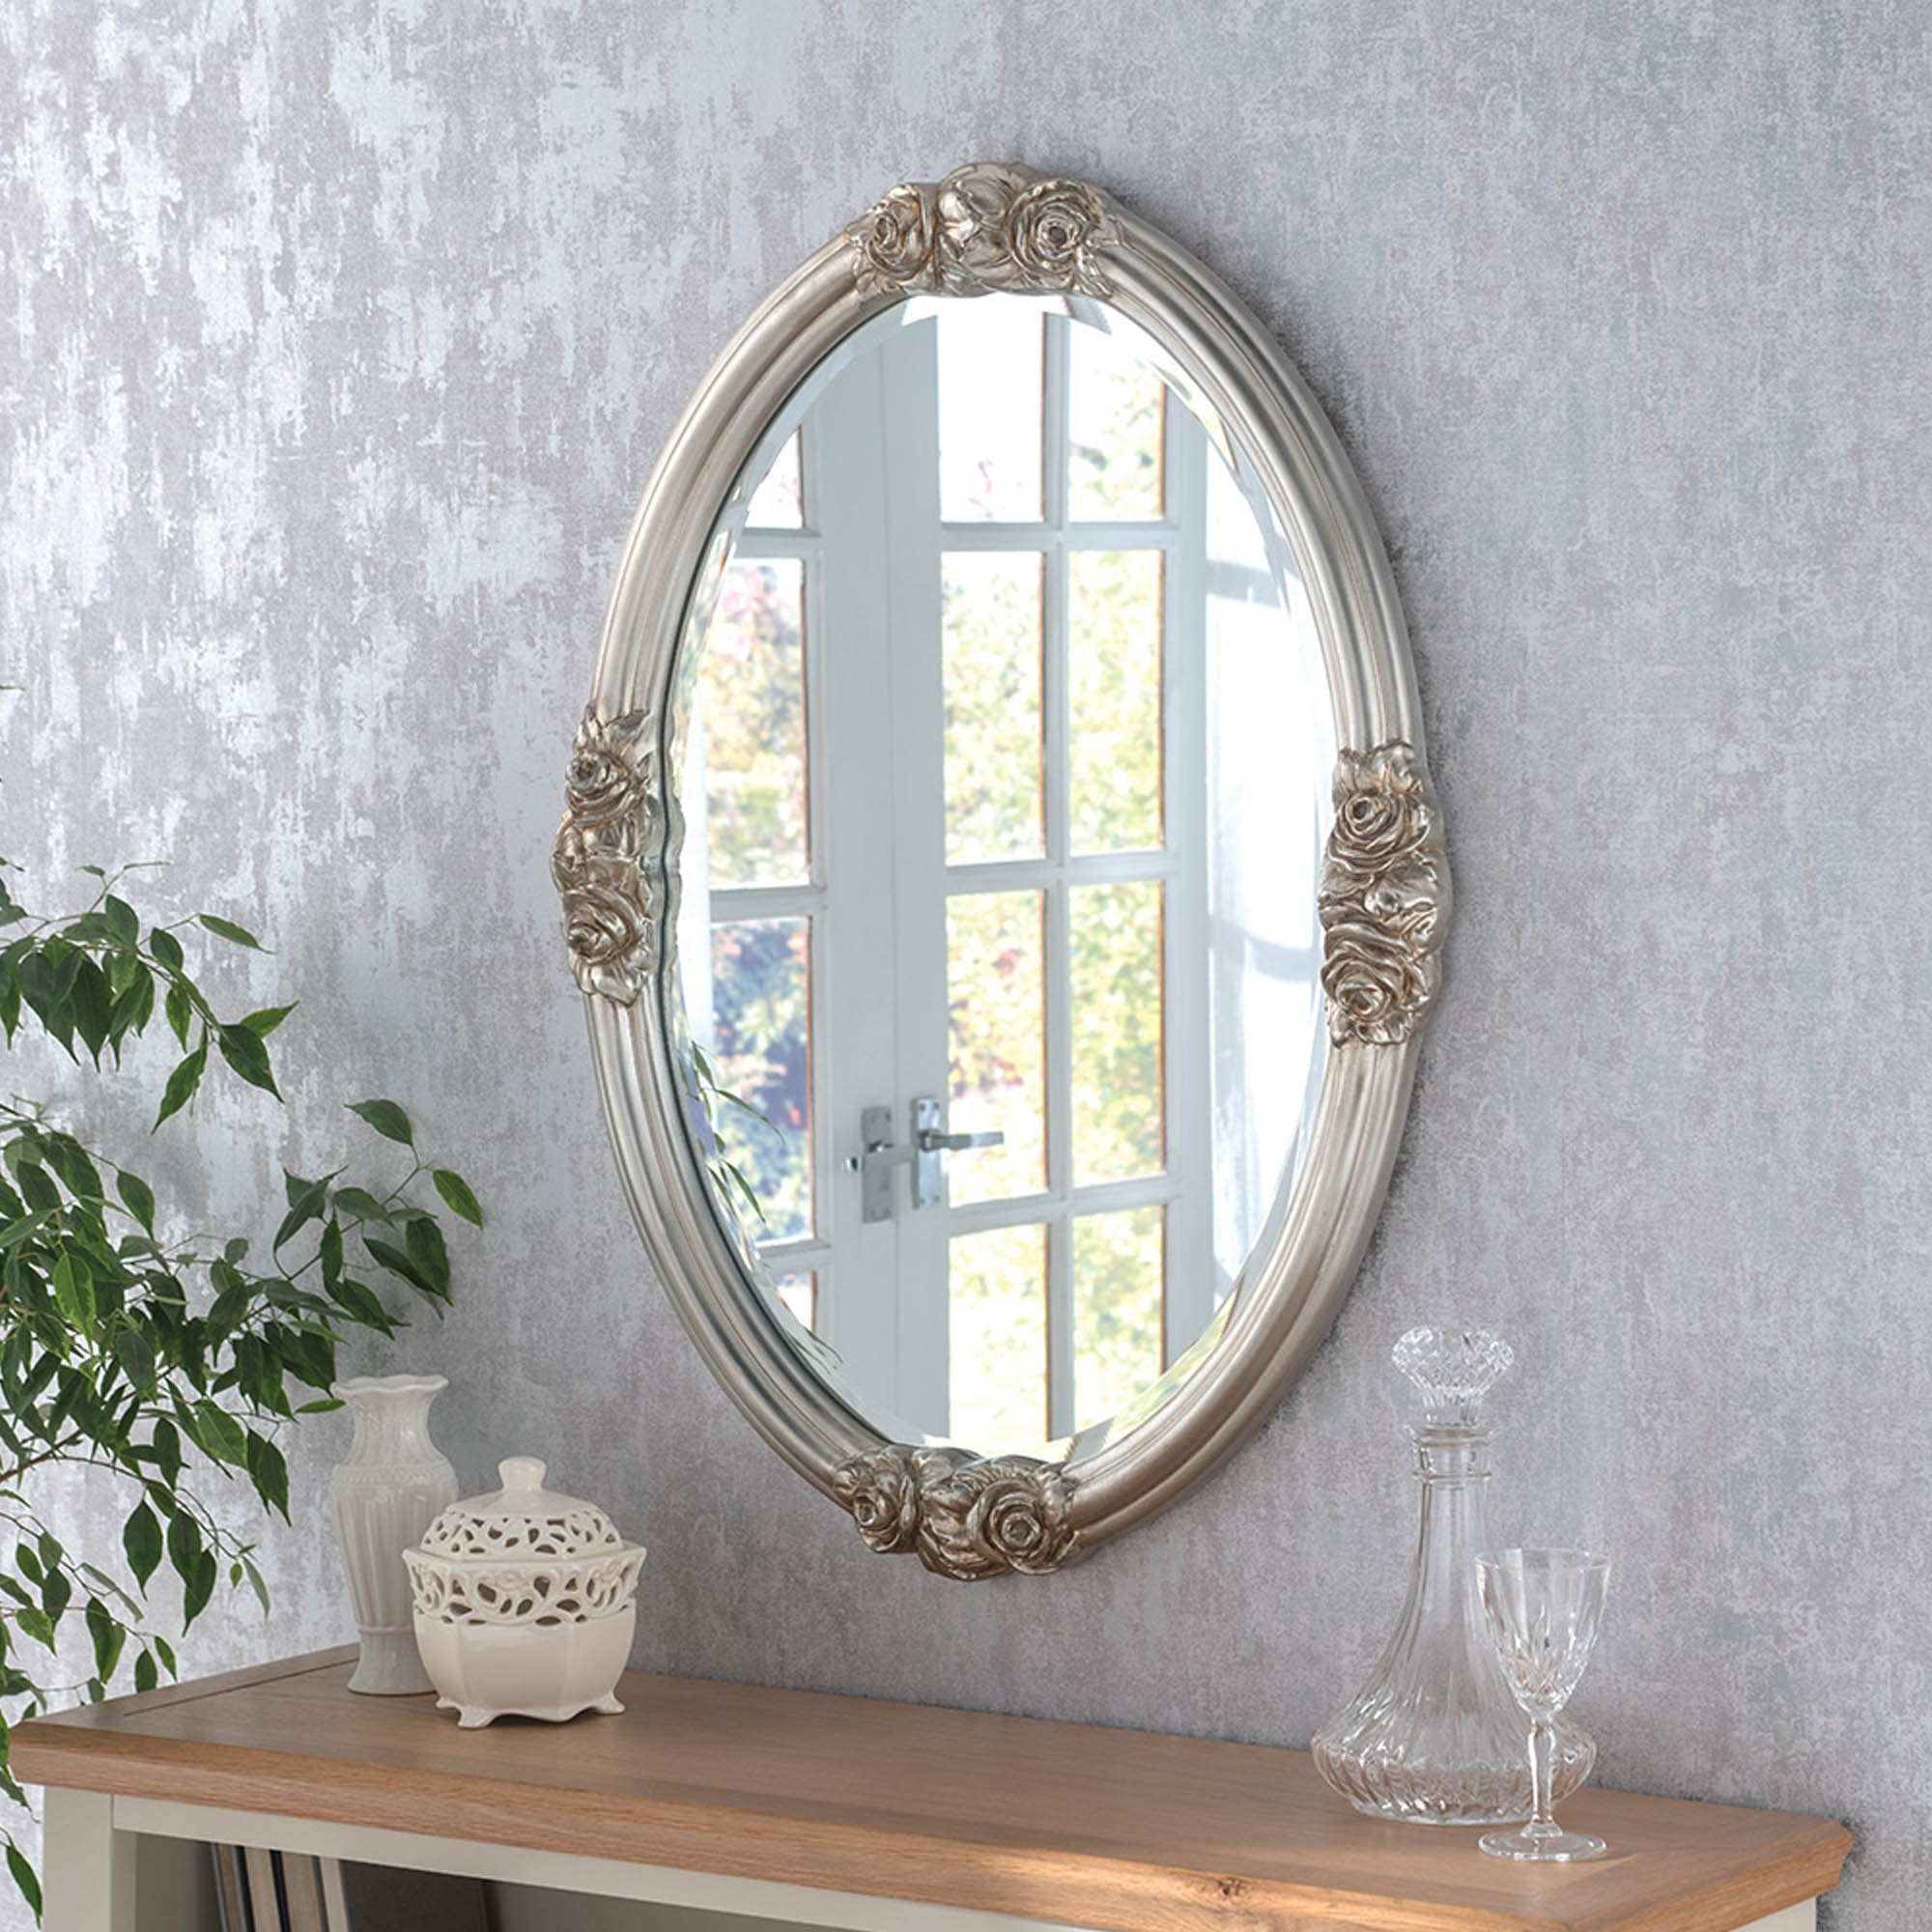 Widely Used Silver Oval Wall Mirrors With Decorative Oval Silver Ornate Wall Mirror (View 20 of 20)